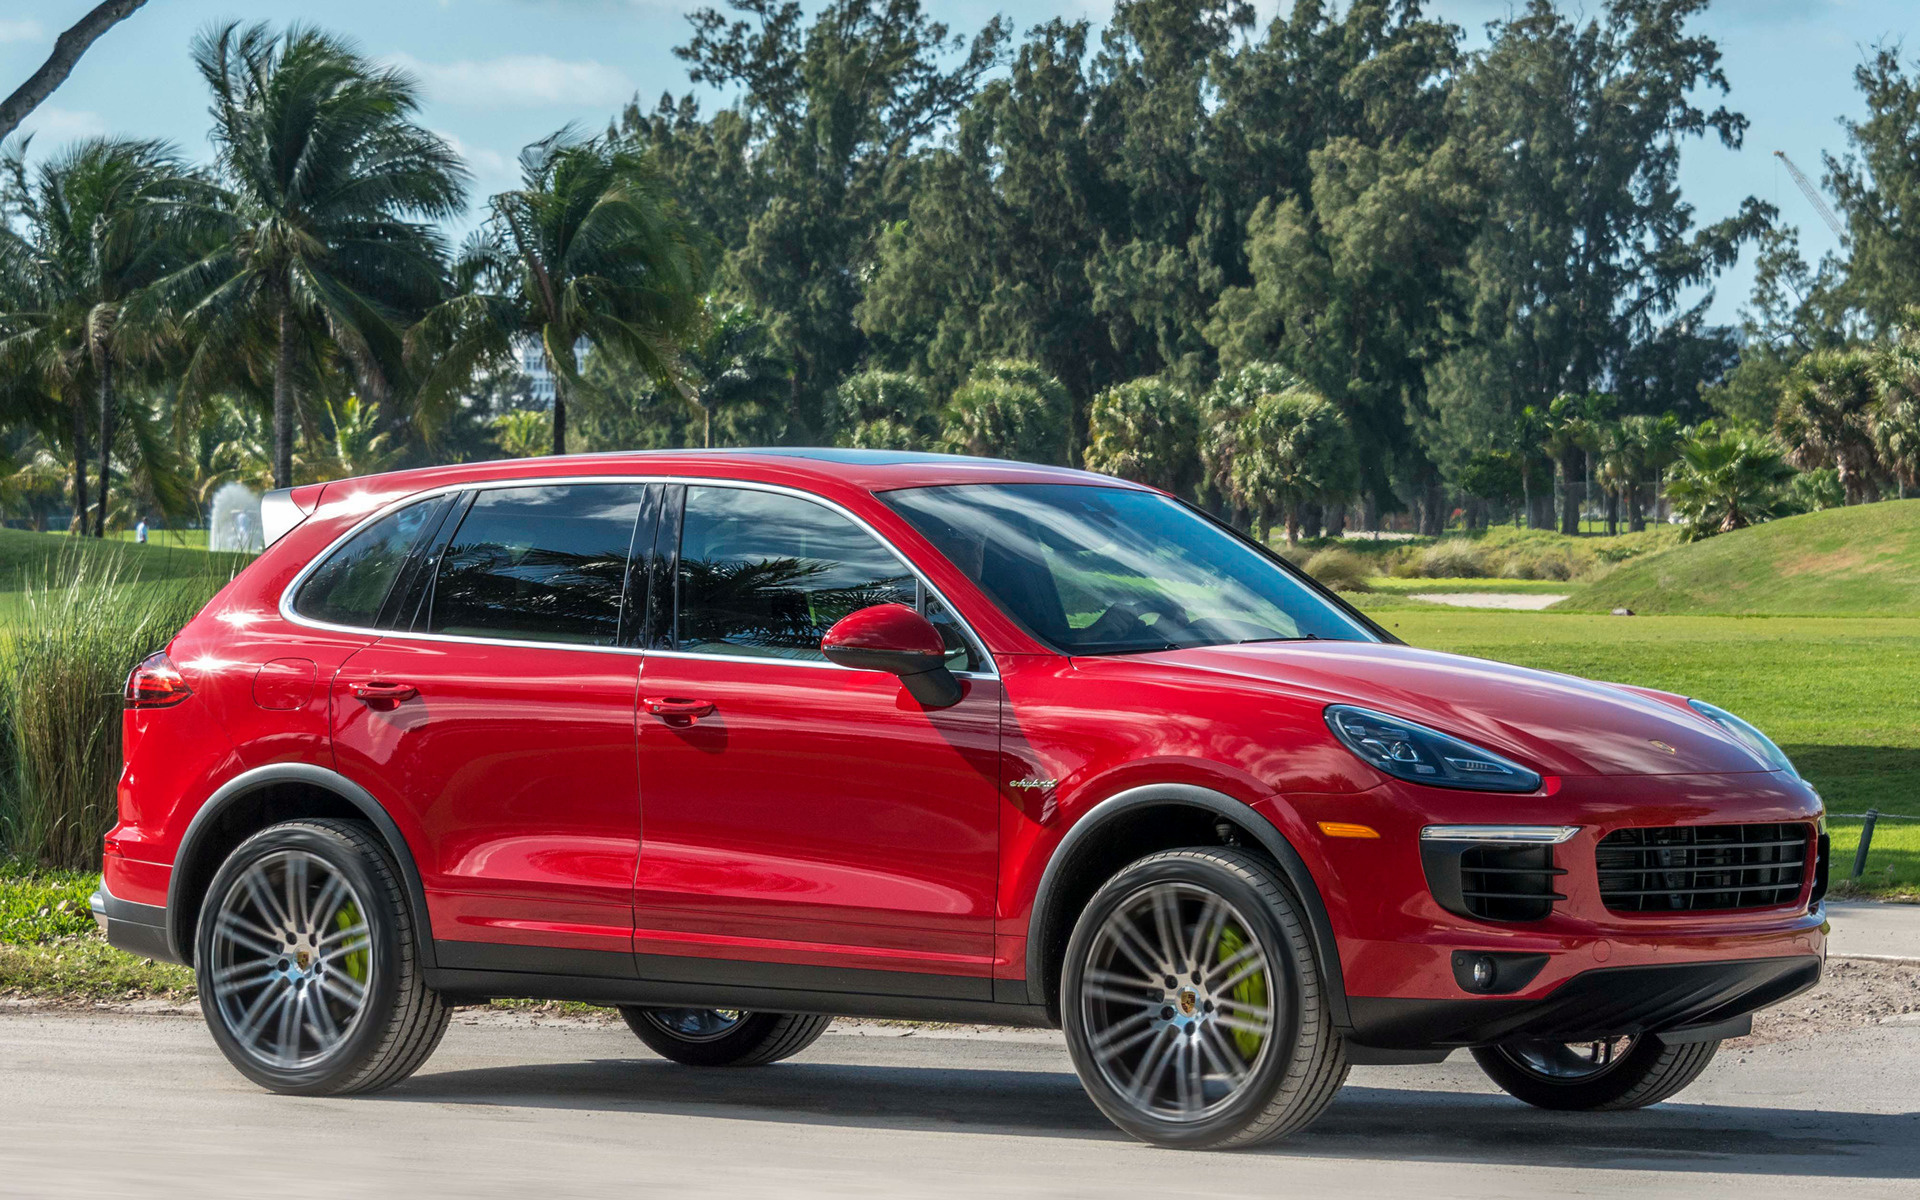 Porsche Cayenne S EHybrid 2015 US Wallpapers and HD Images